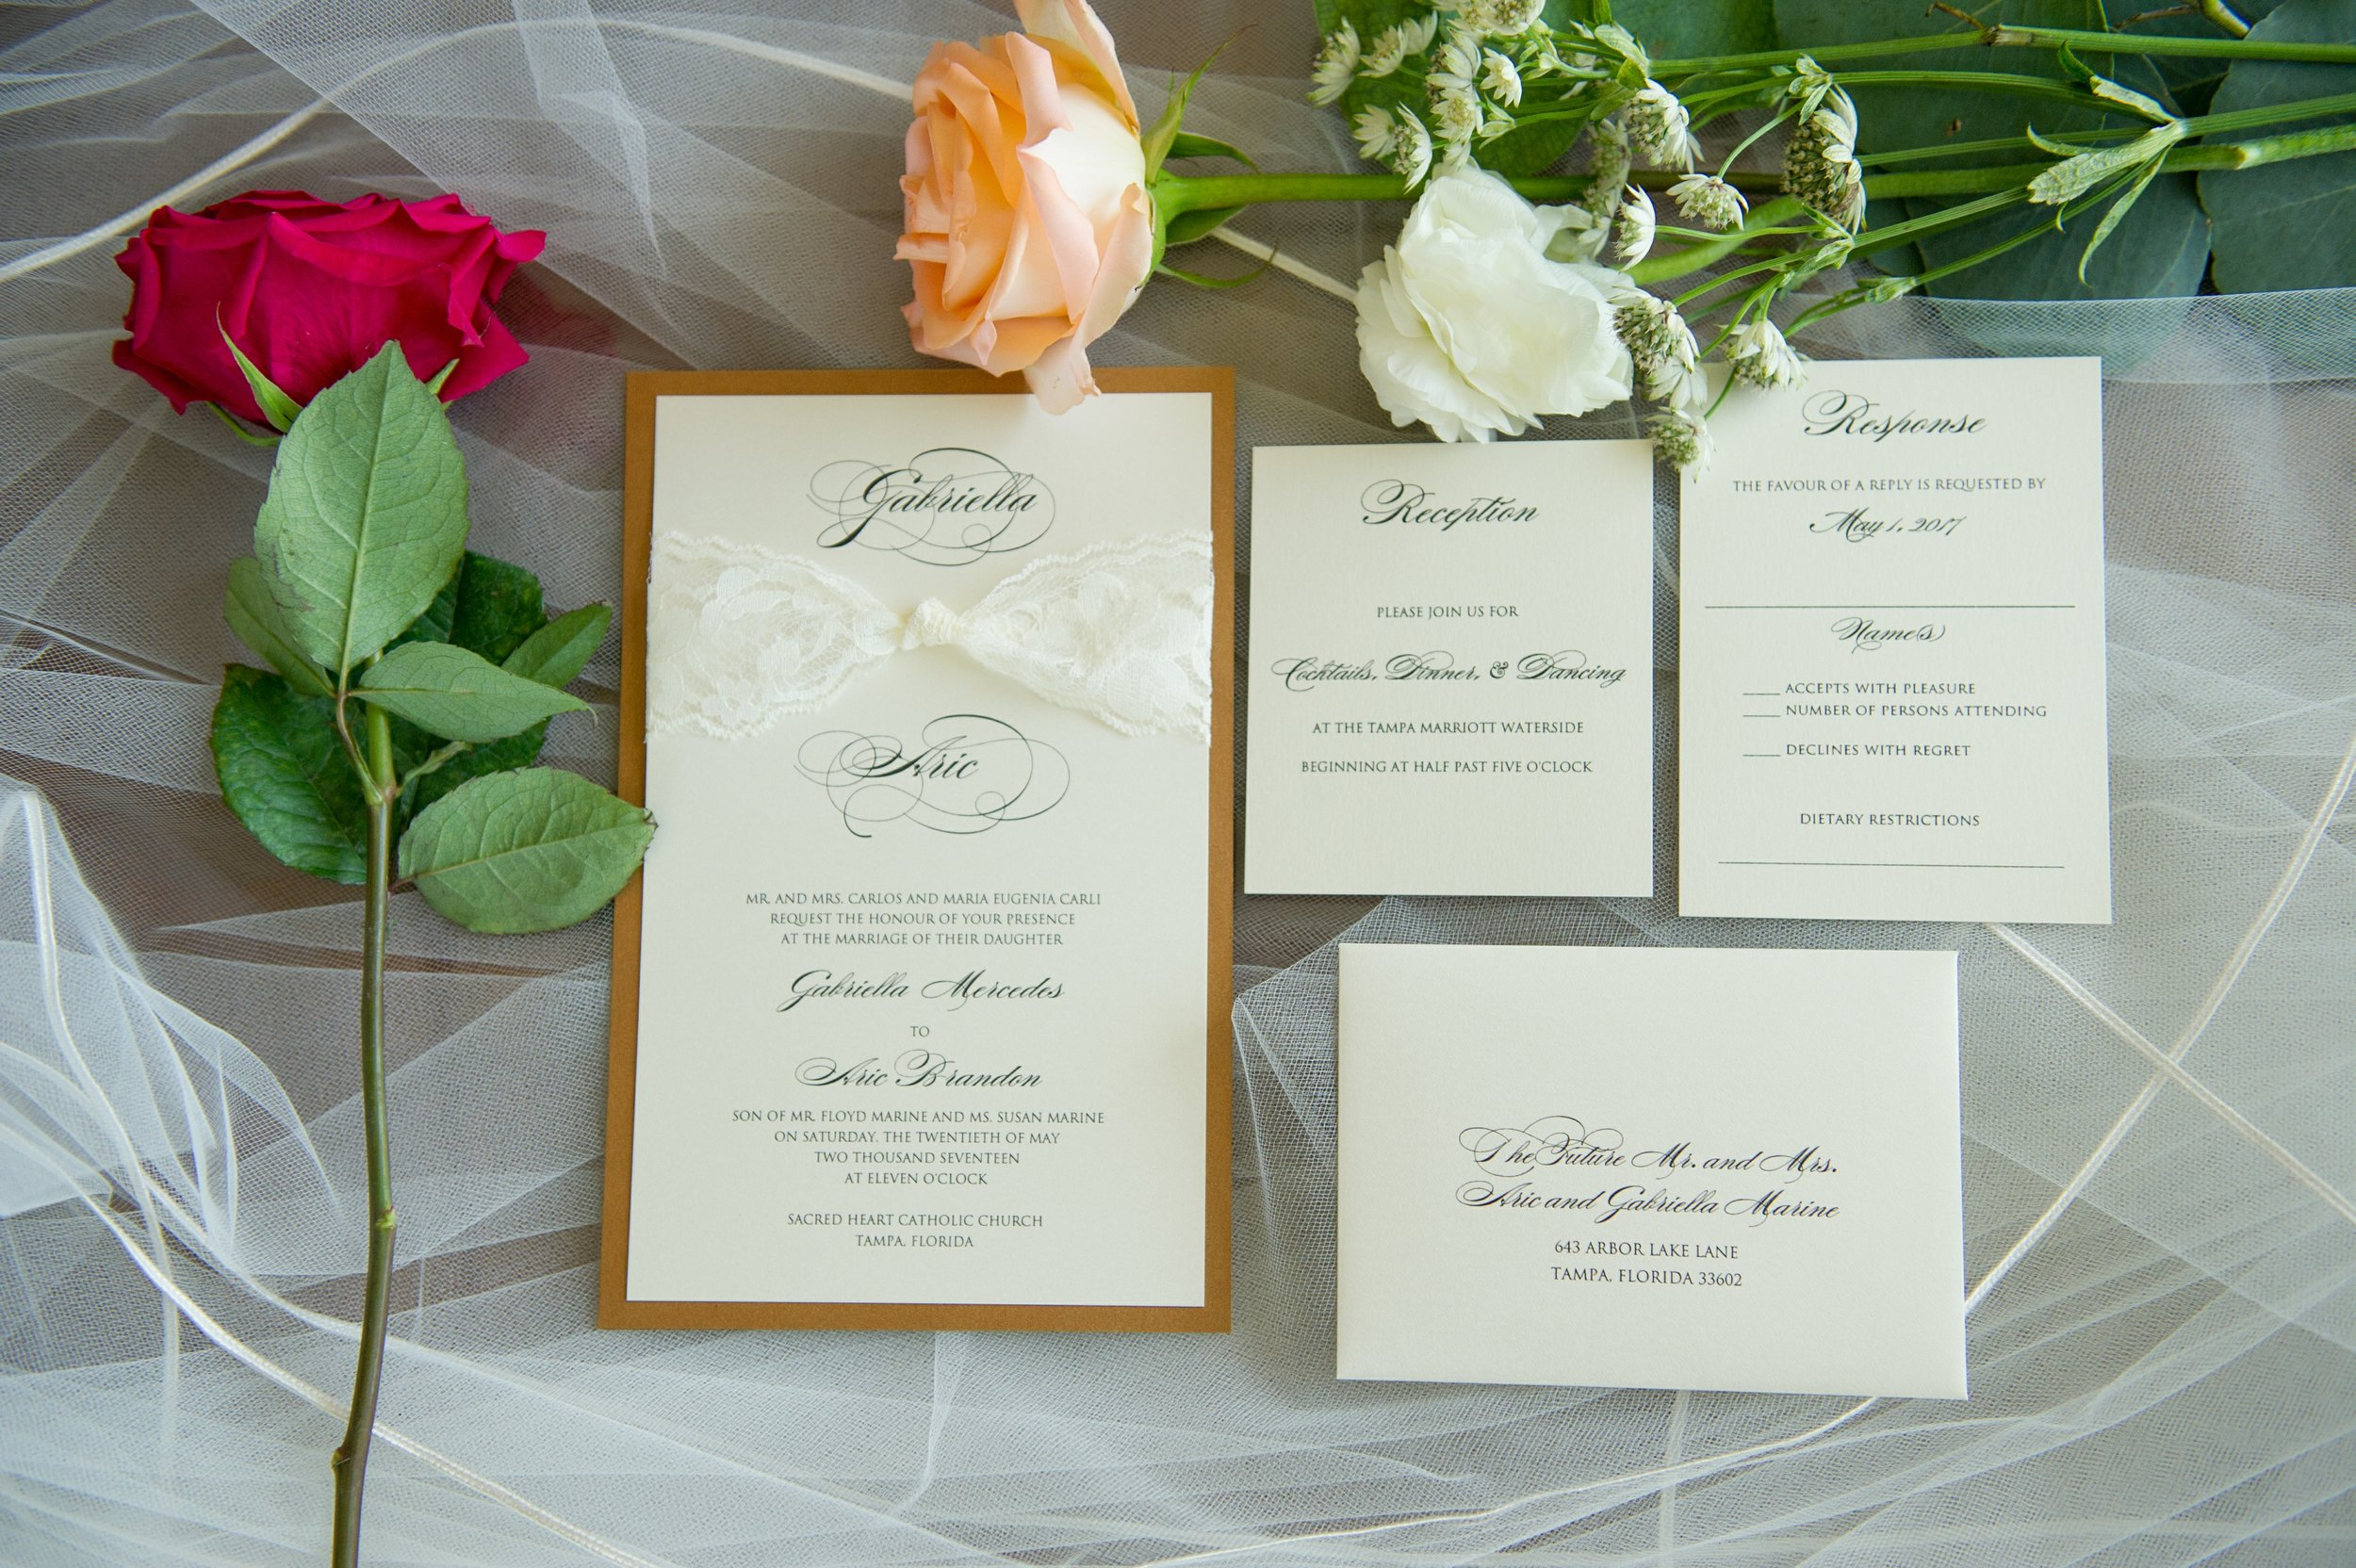 The classic style invitation suite with calligraphy script featured copper and lace details to add in some vintage aspects to the clean design.